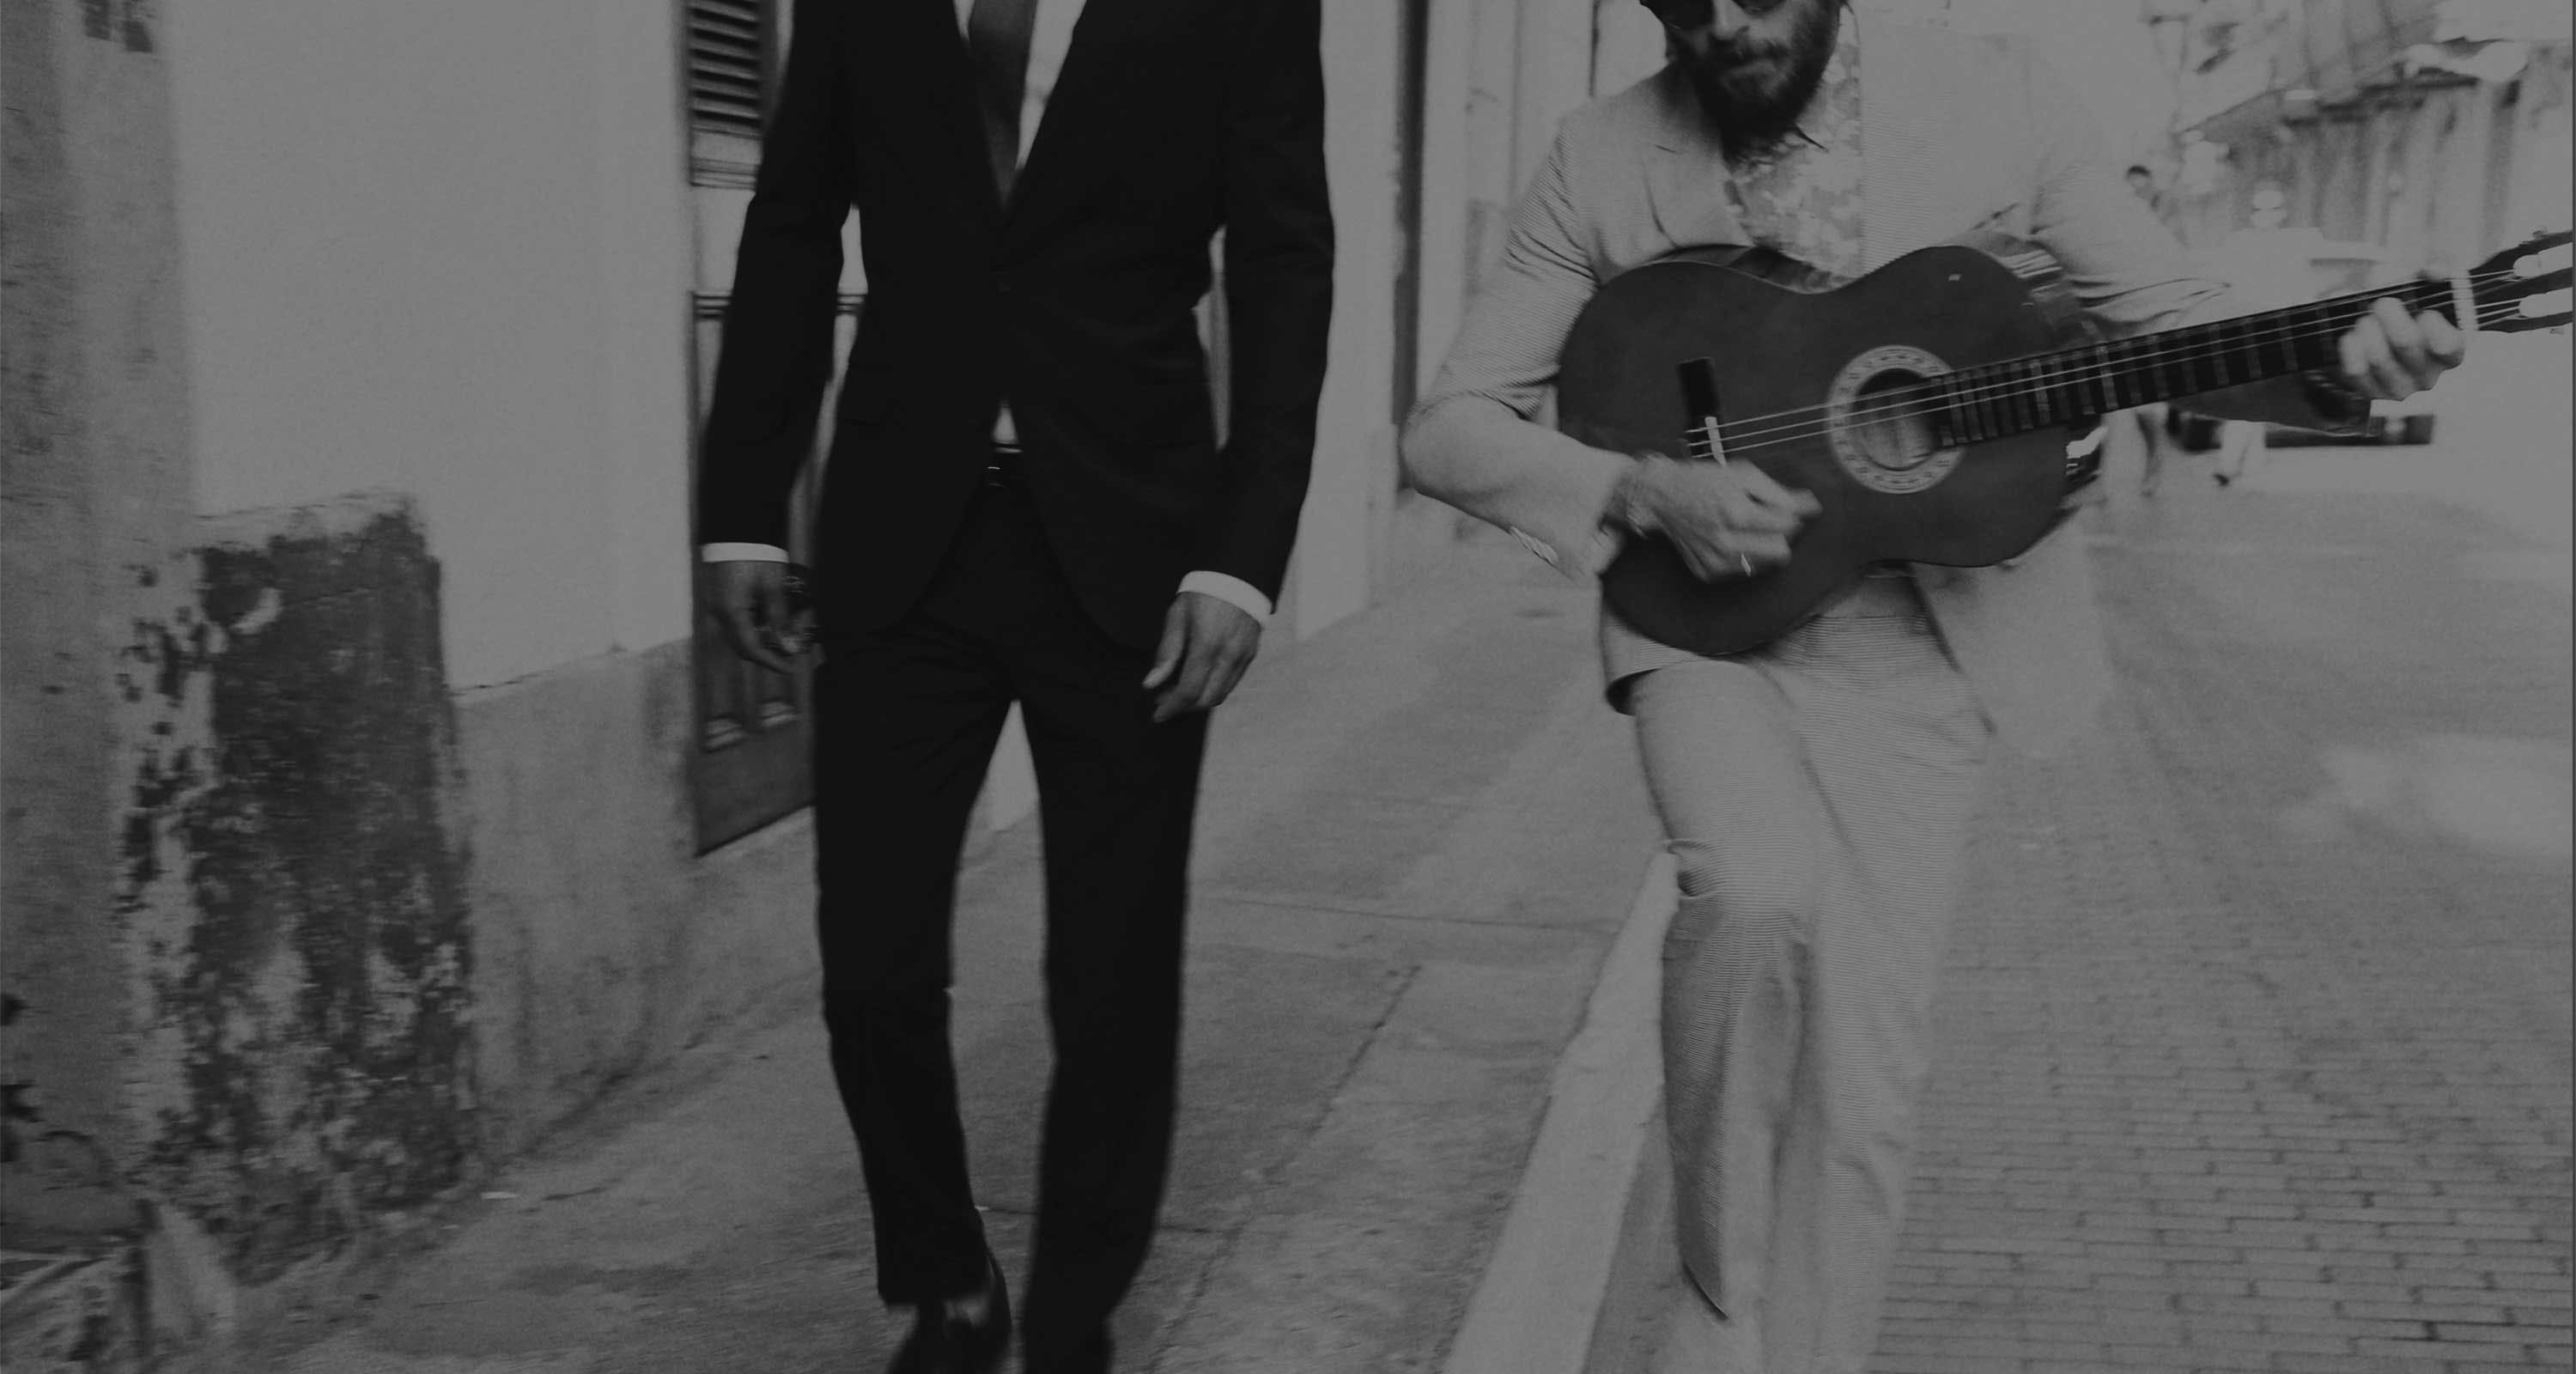 Man in suit next to man with guitar